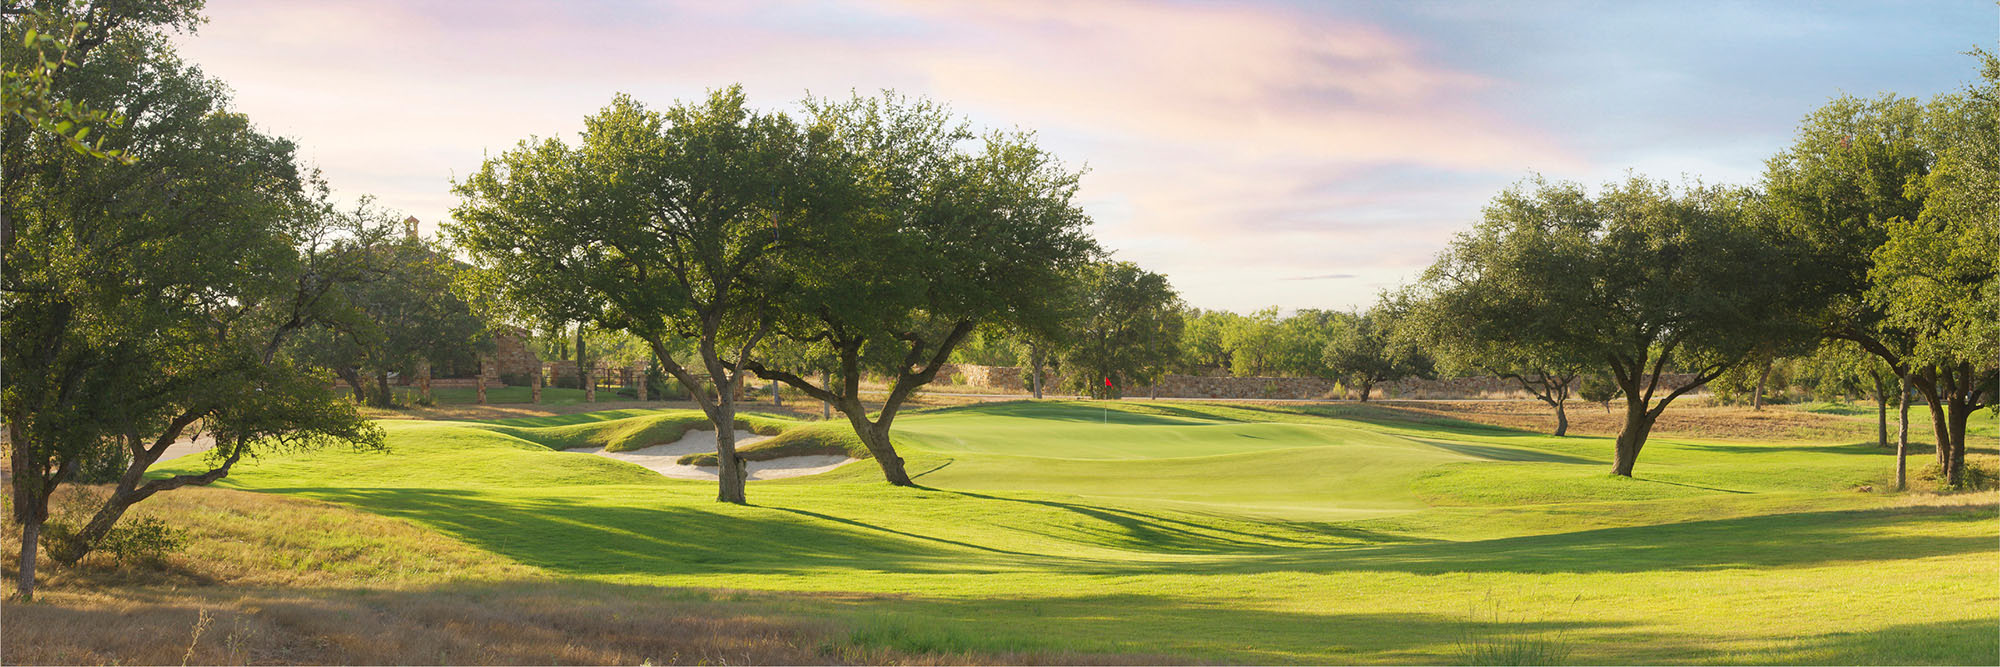 Golf Course Image - Escondido No. 5